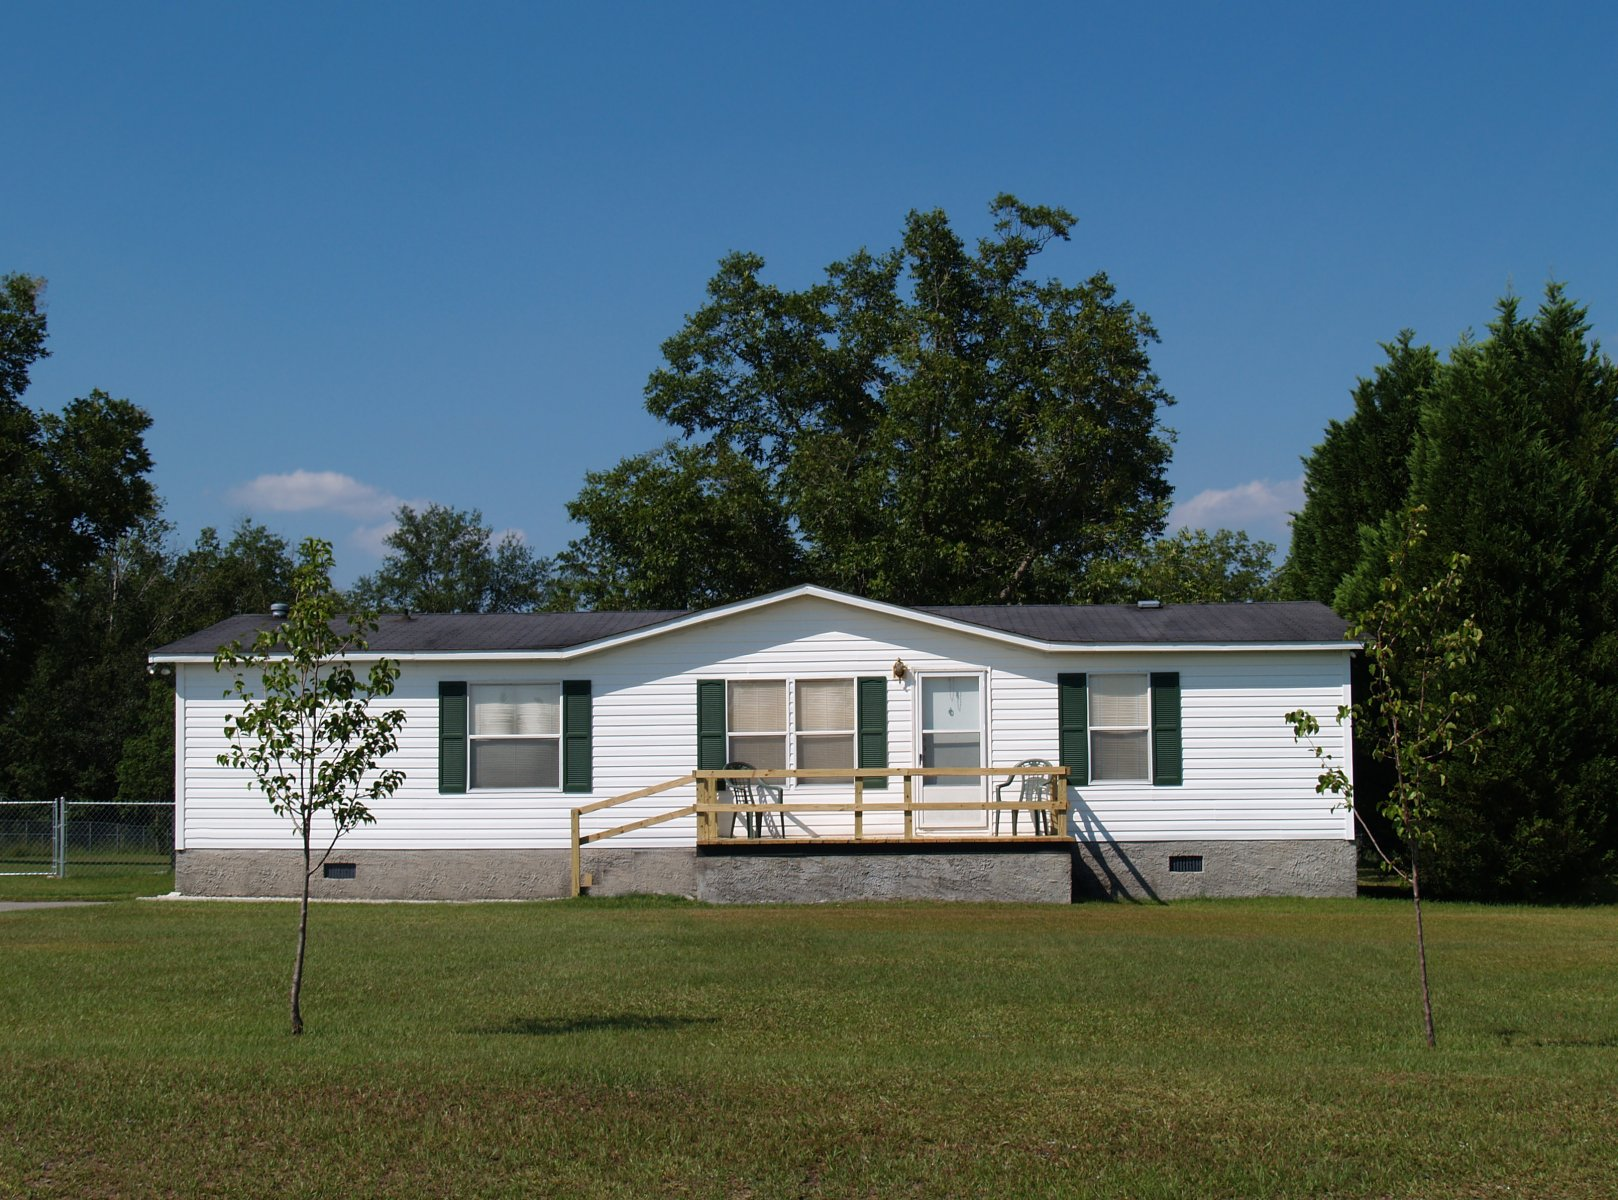 5 Tips For Selling Your Mobile Home In Union County Top Notch Mobile Home Service on the word service, great service, world class service, super service, high tea service, red carpet service, best service, exceptional service, reliable service, arrow service, awesome service, 24 hour service,